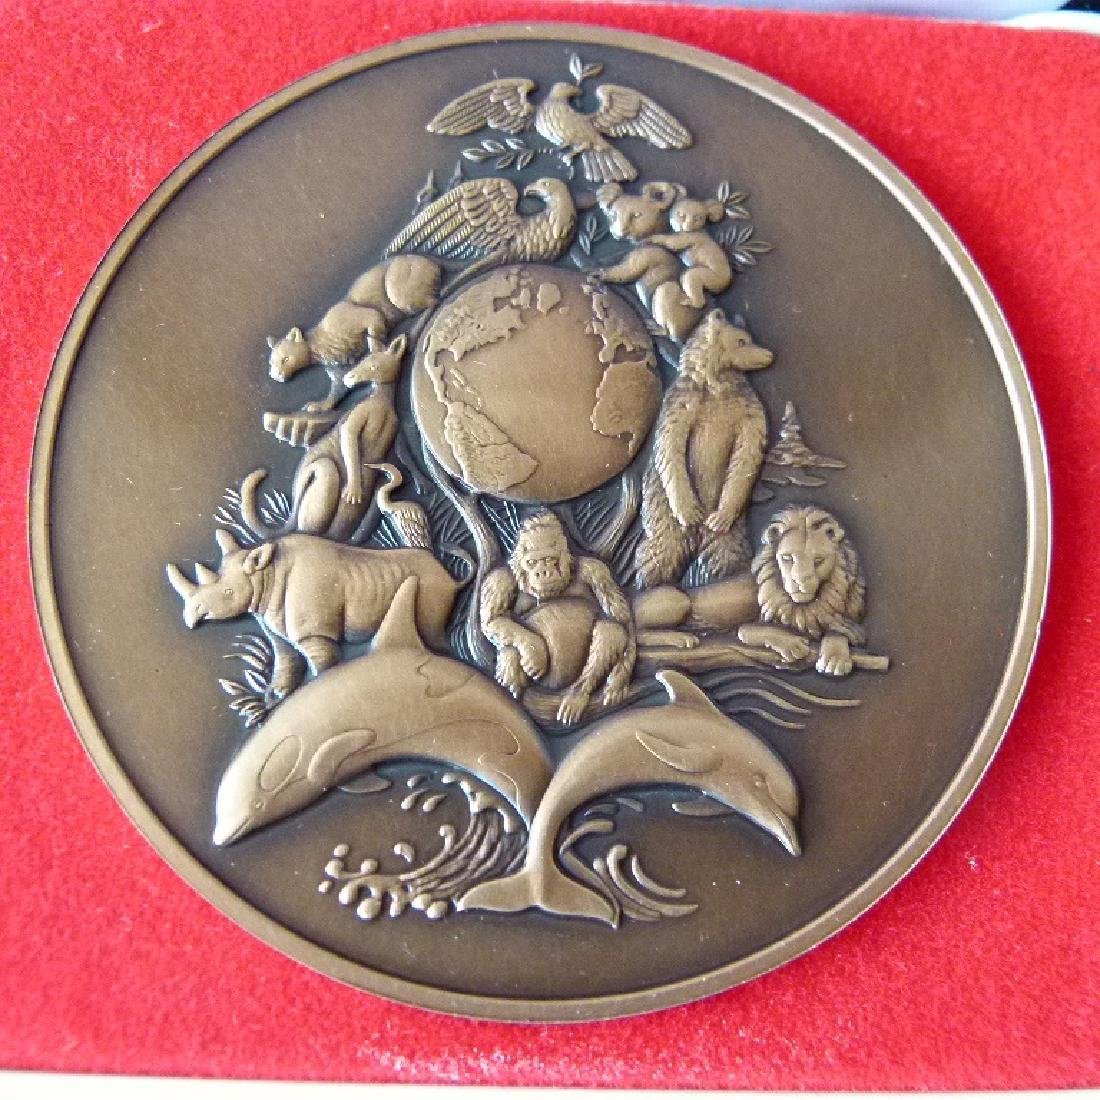 2 BRONZE MEDALLIONS INCL. FRENCH/US FRANKLIN MINT - 4